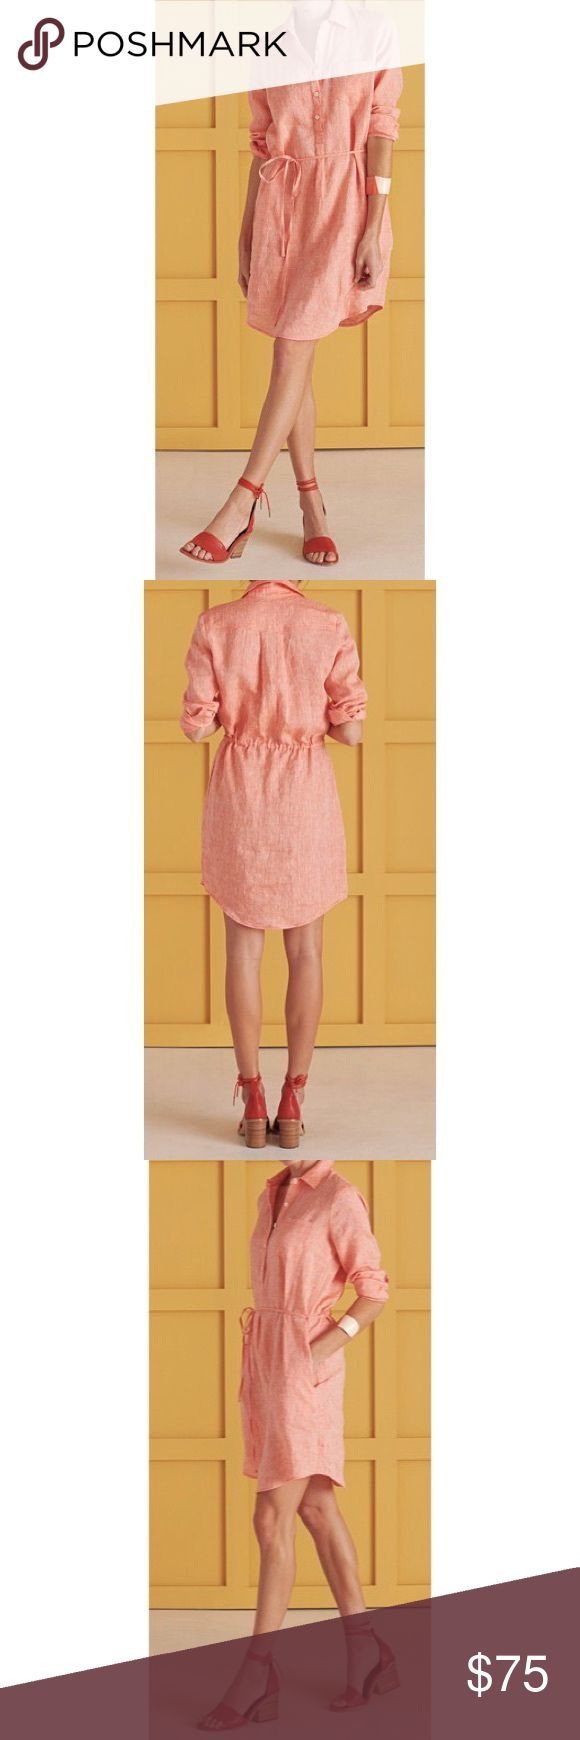 """Serena & Lily Margot Popover Dress **Barely Worn - Great Condition**  Relaxed popover dress in fabulous linen. Washed ever so slightly for that casually polished effect, it's the amalgamation of everything a woman wants to wear on the weekend. The cinched drawstring waist hits perfectly and flatters all.  Easy fit. Hits above the knee, 35"""" from shoulder. Curves up at side hem like classic men's shirts. 100% washed linen. Drawstring waist. Side seam pockets. Ivory shell buttons. Made in the…"""